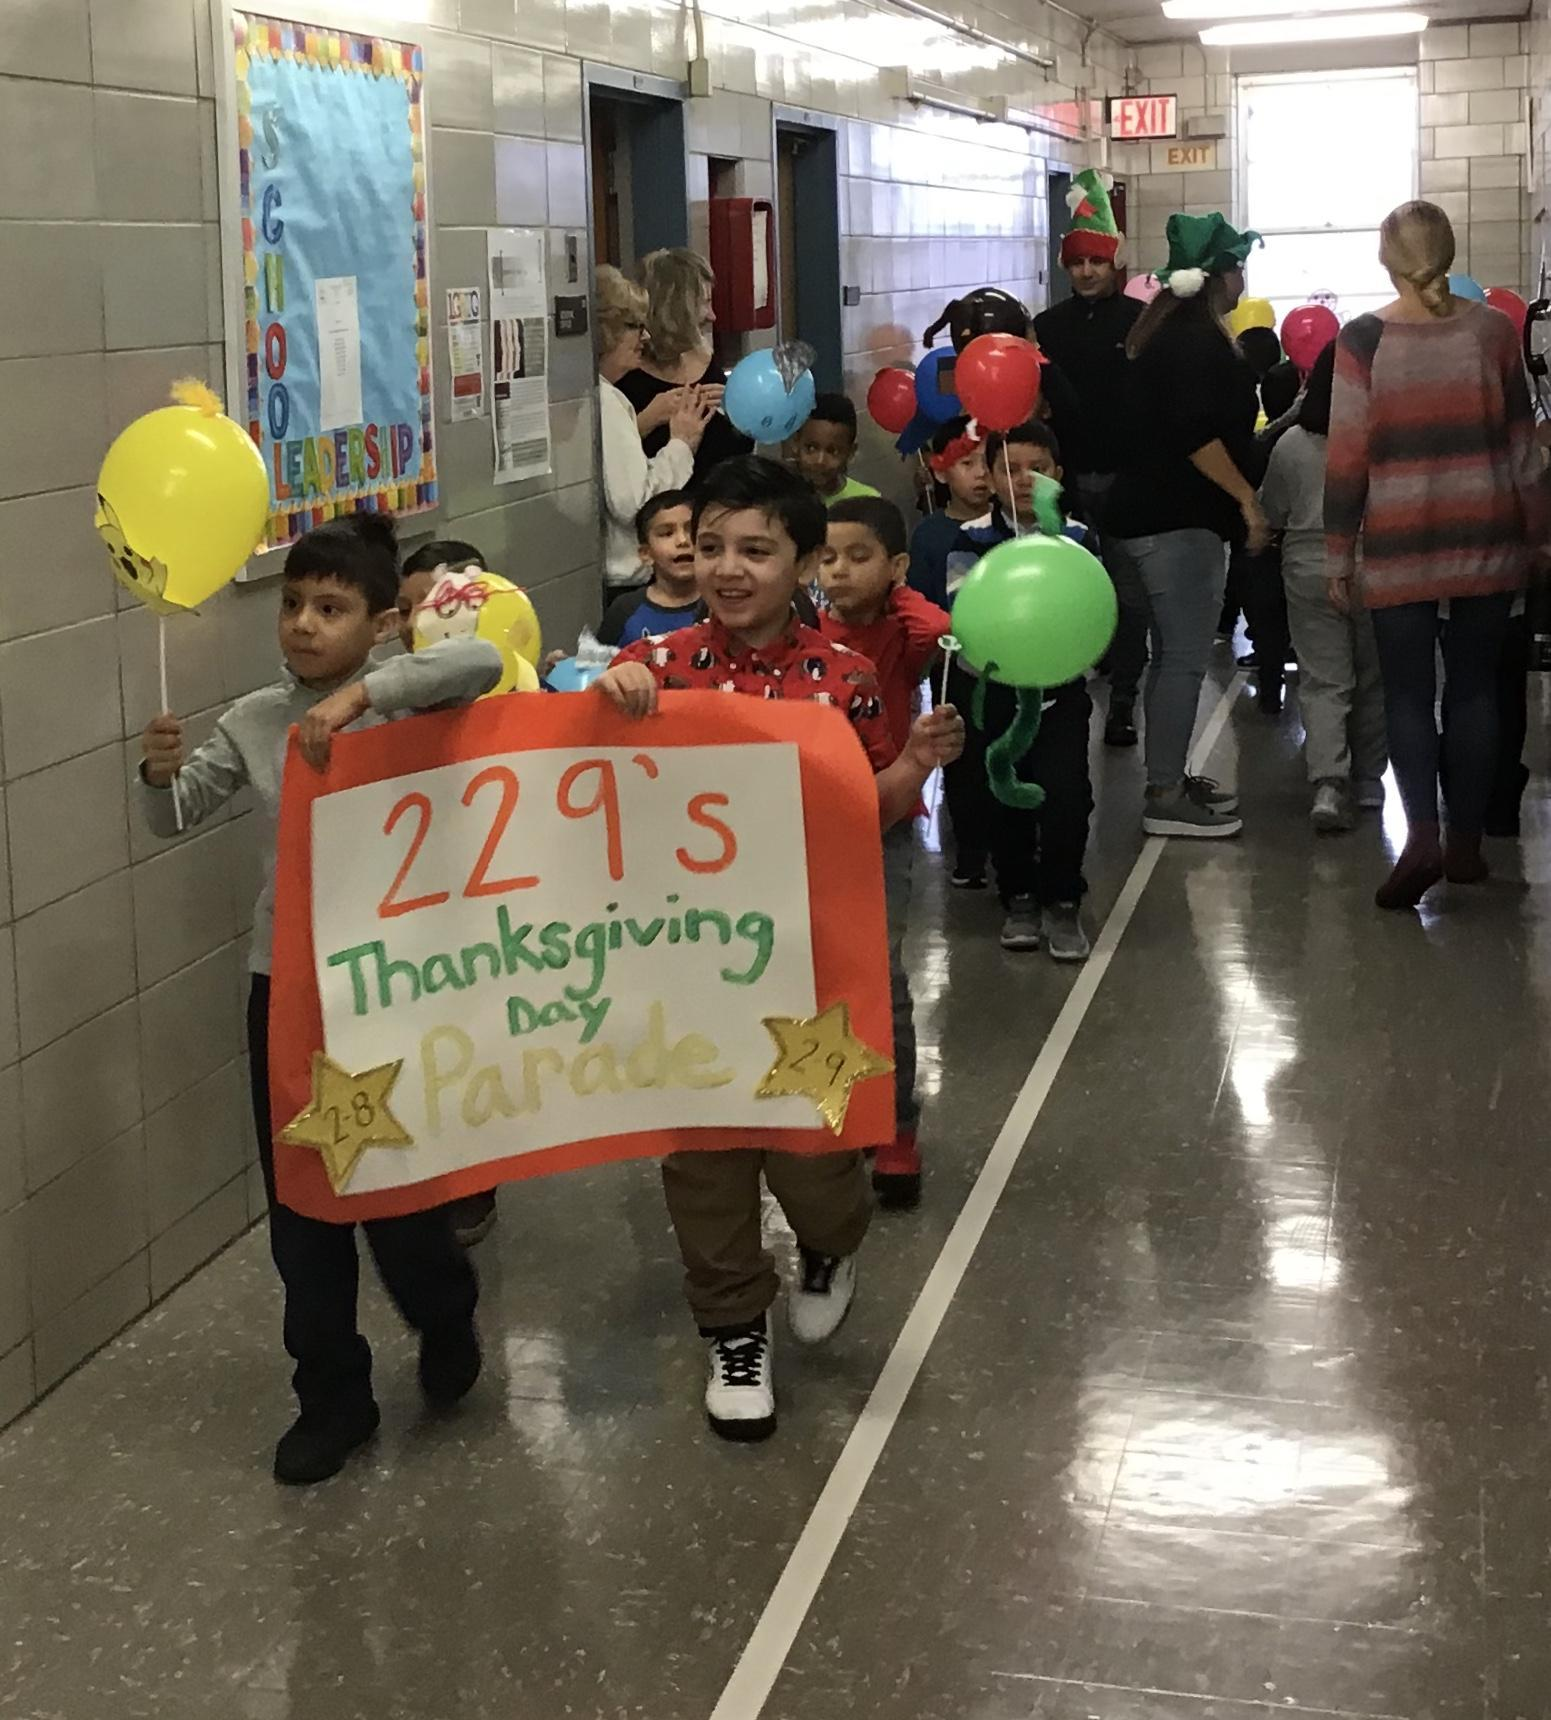 students parading in school hallway with balloons and sign